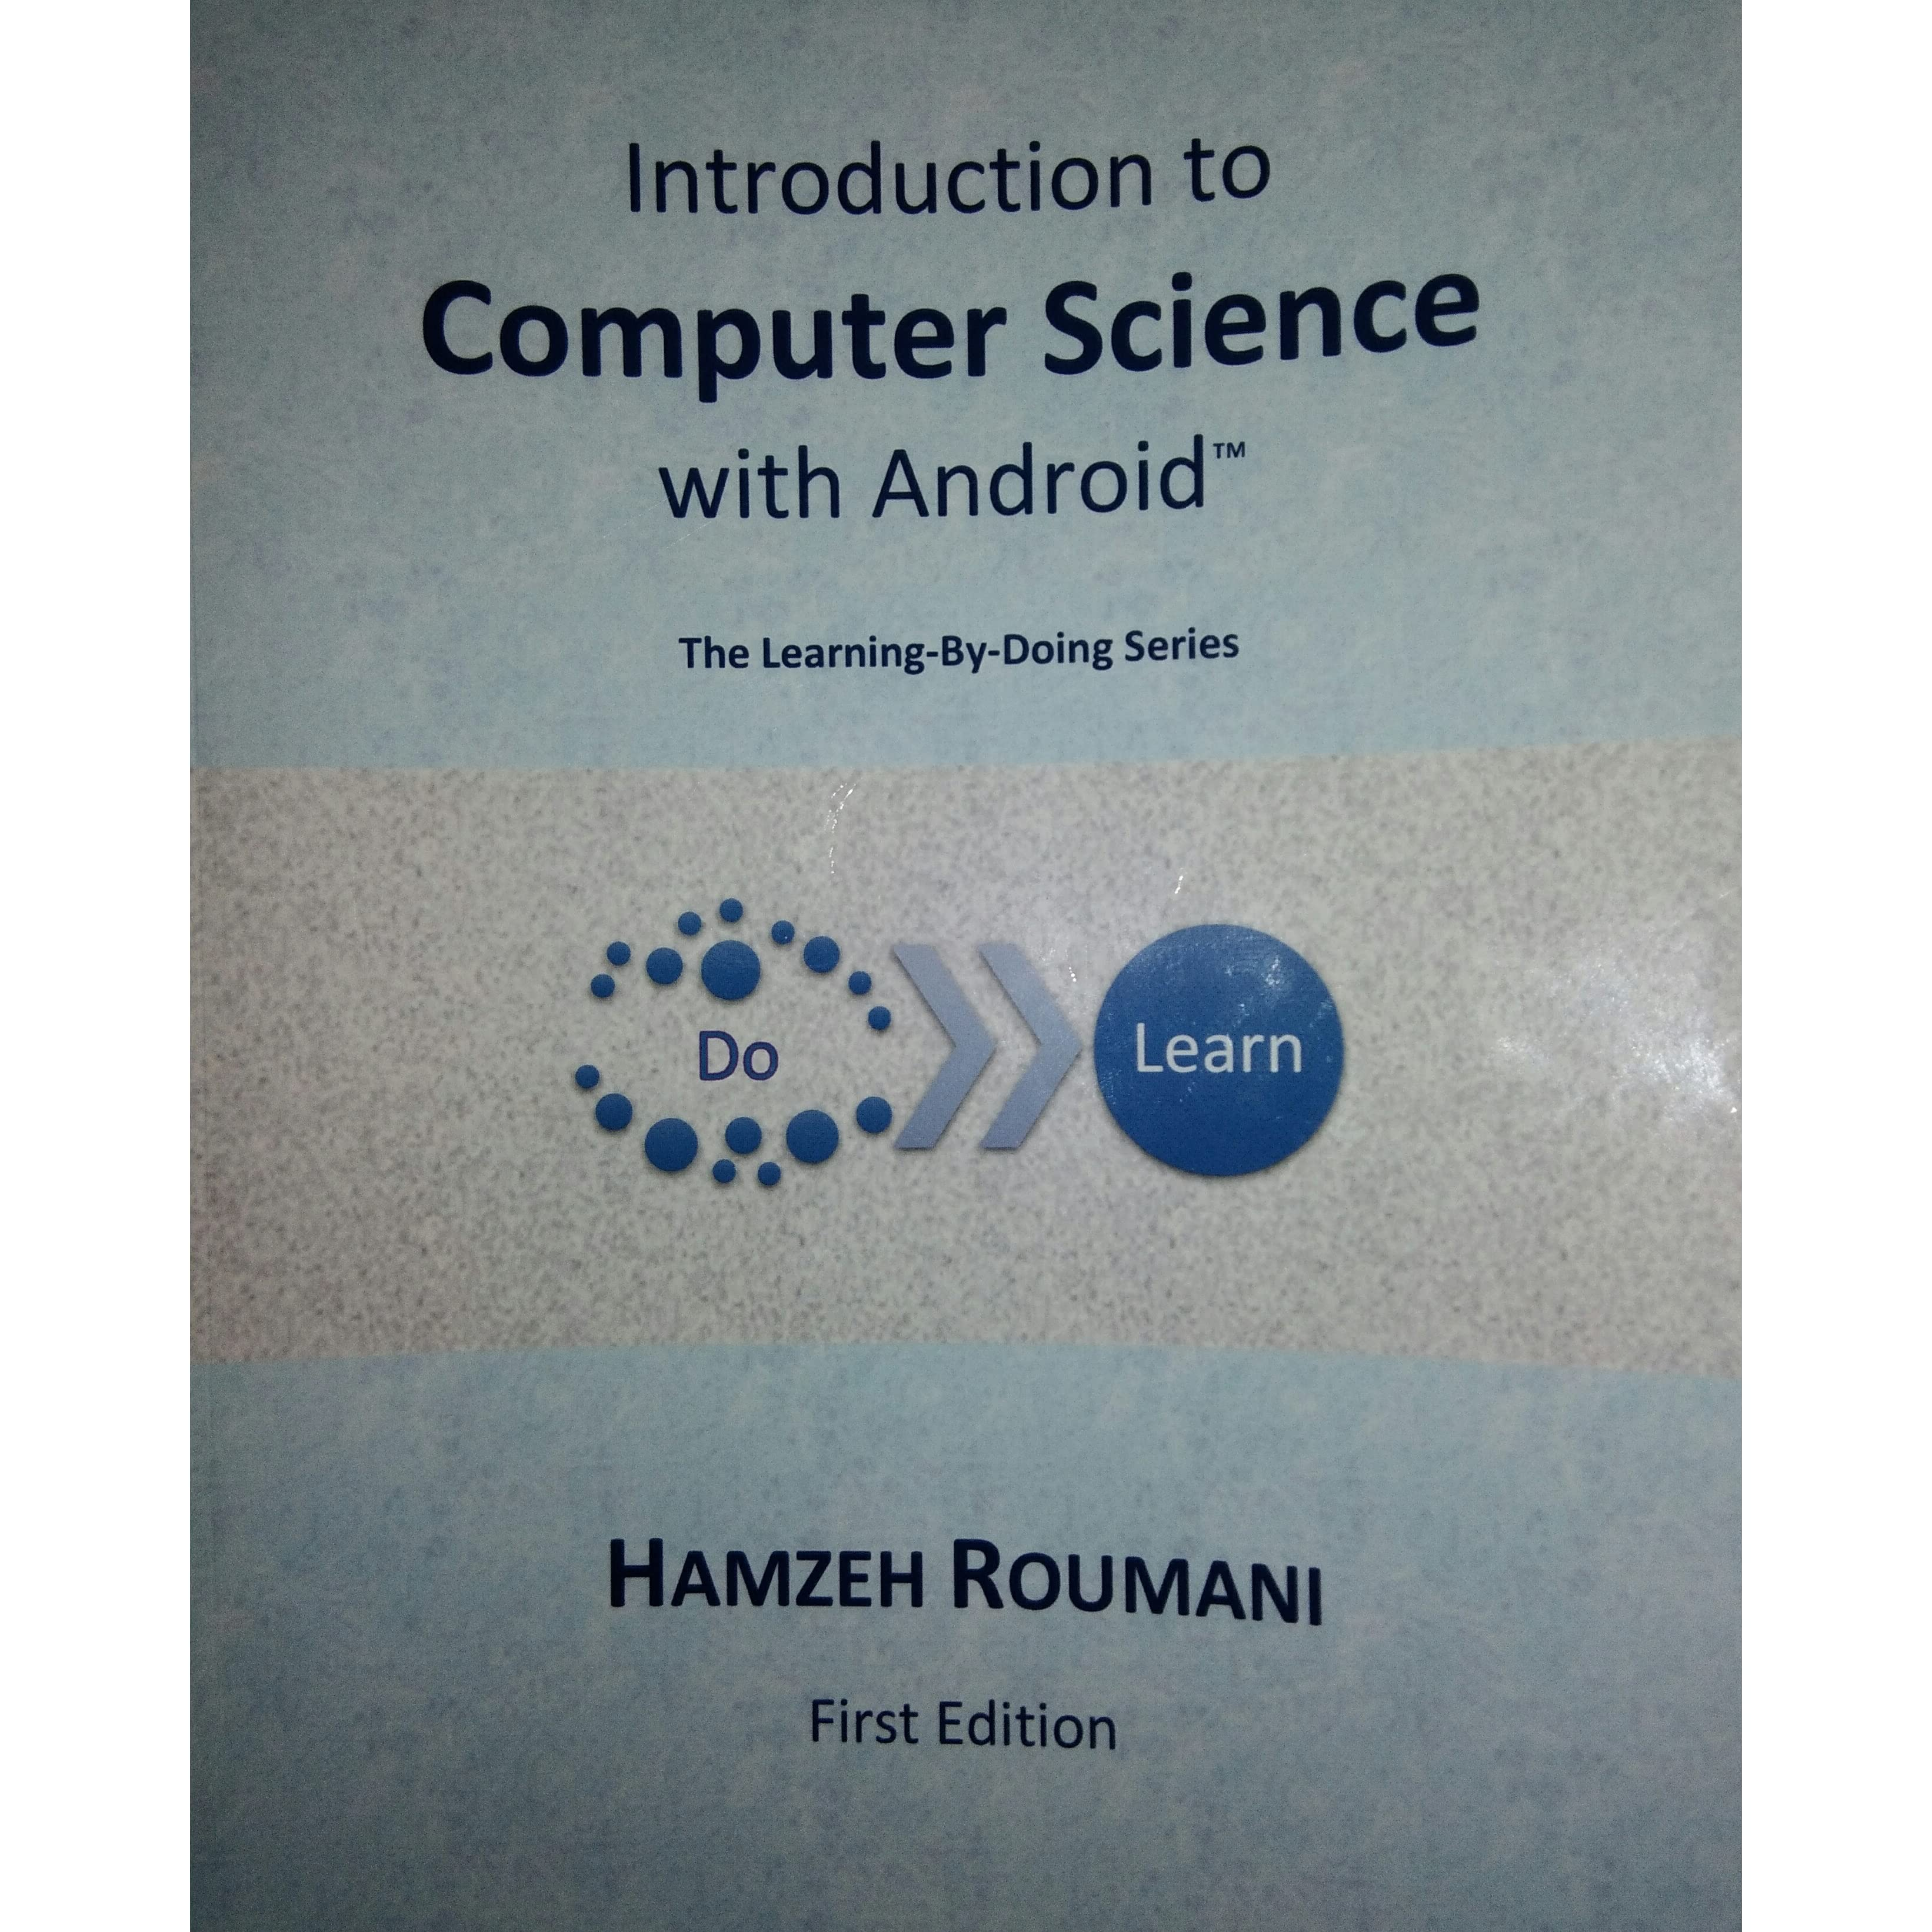 Introduction to Computer Science with Android by Hamzeh Roumani